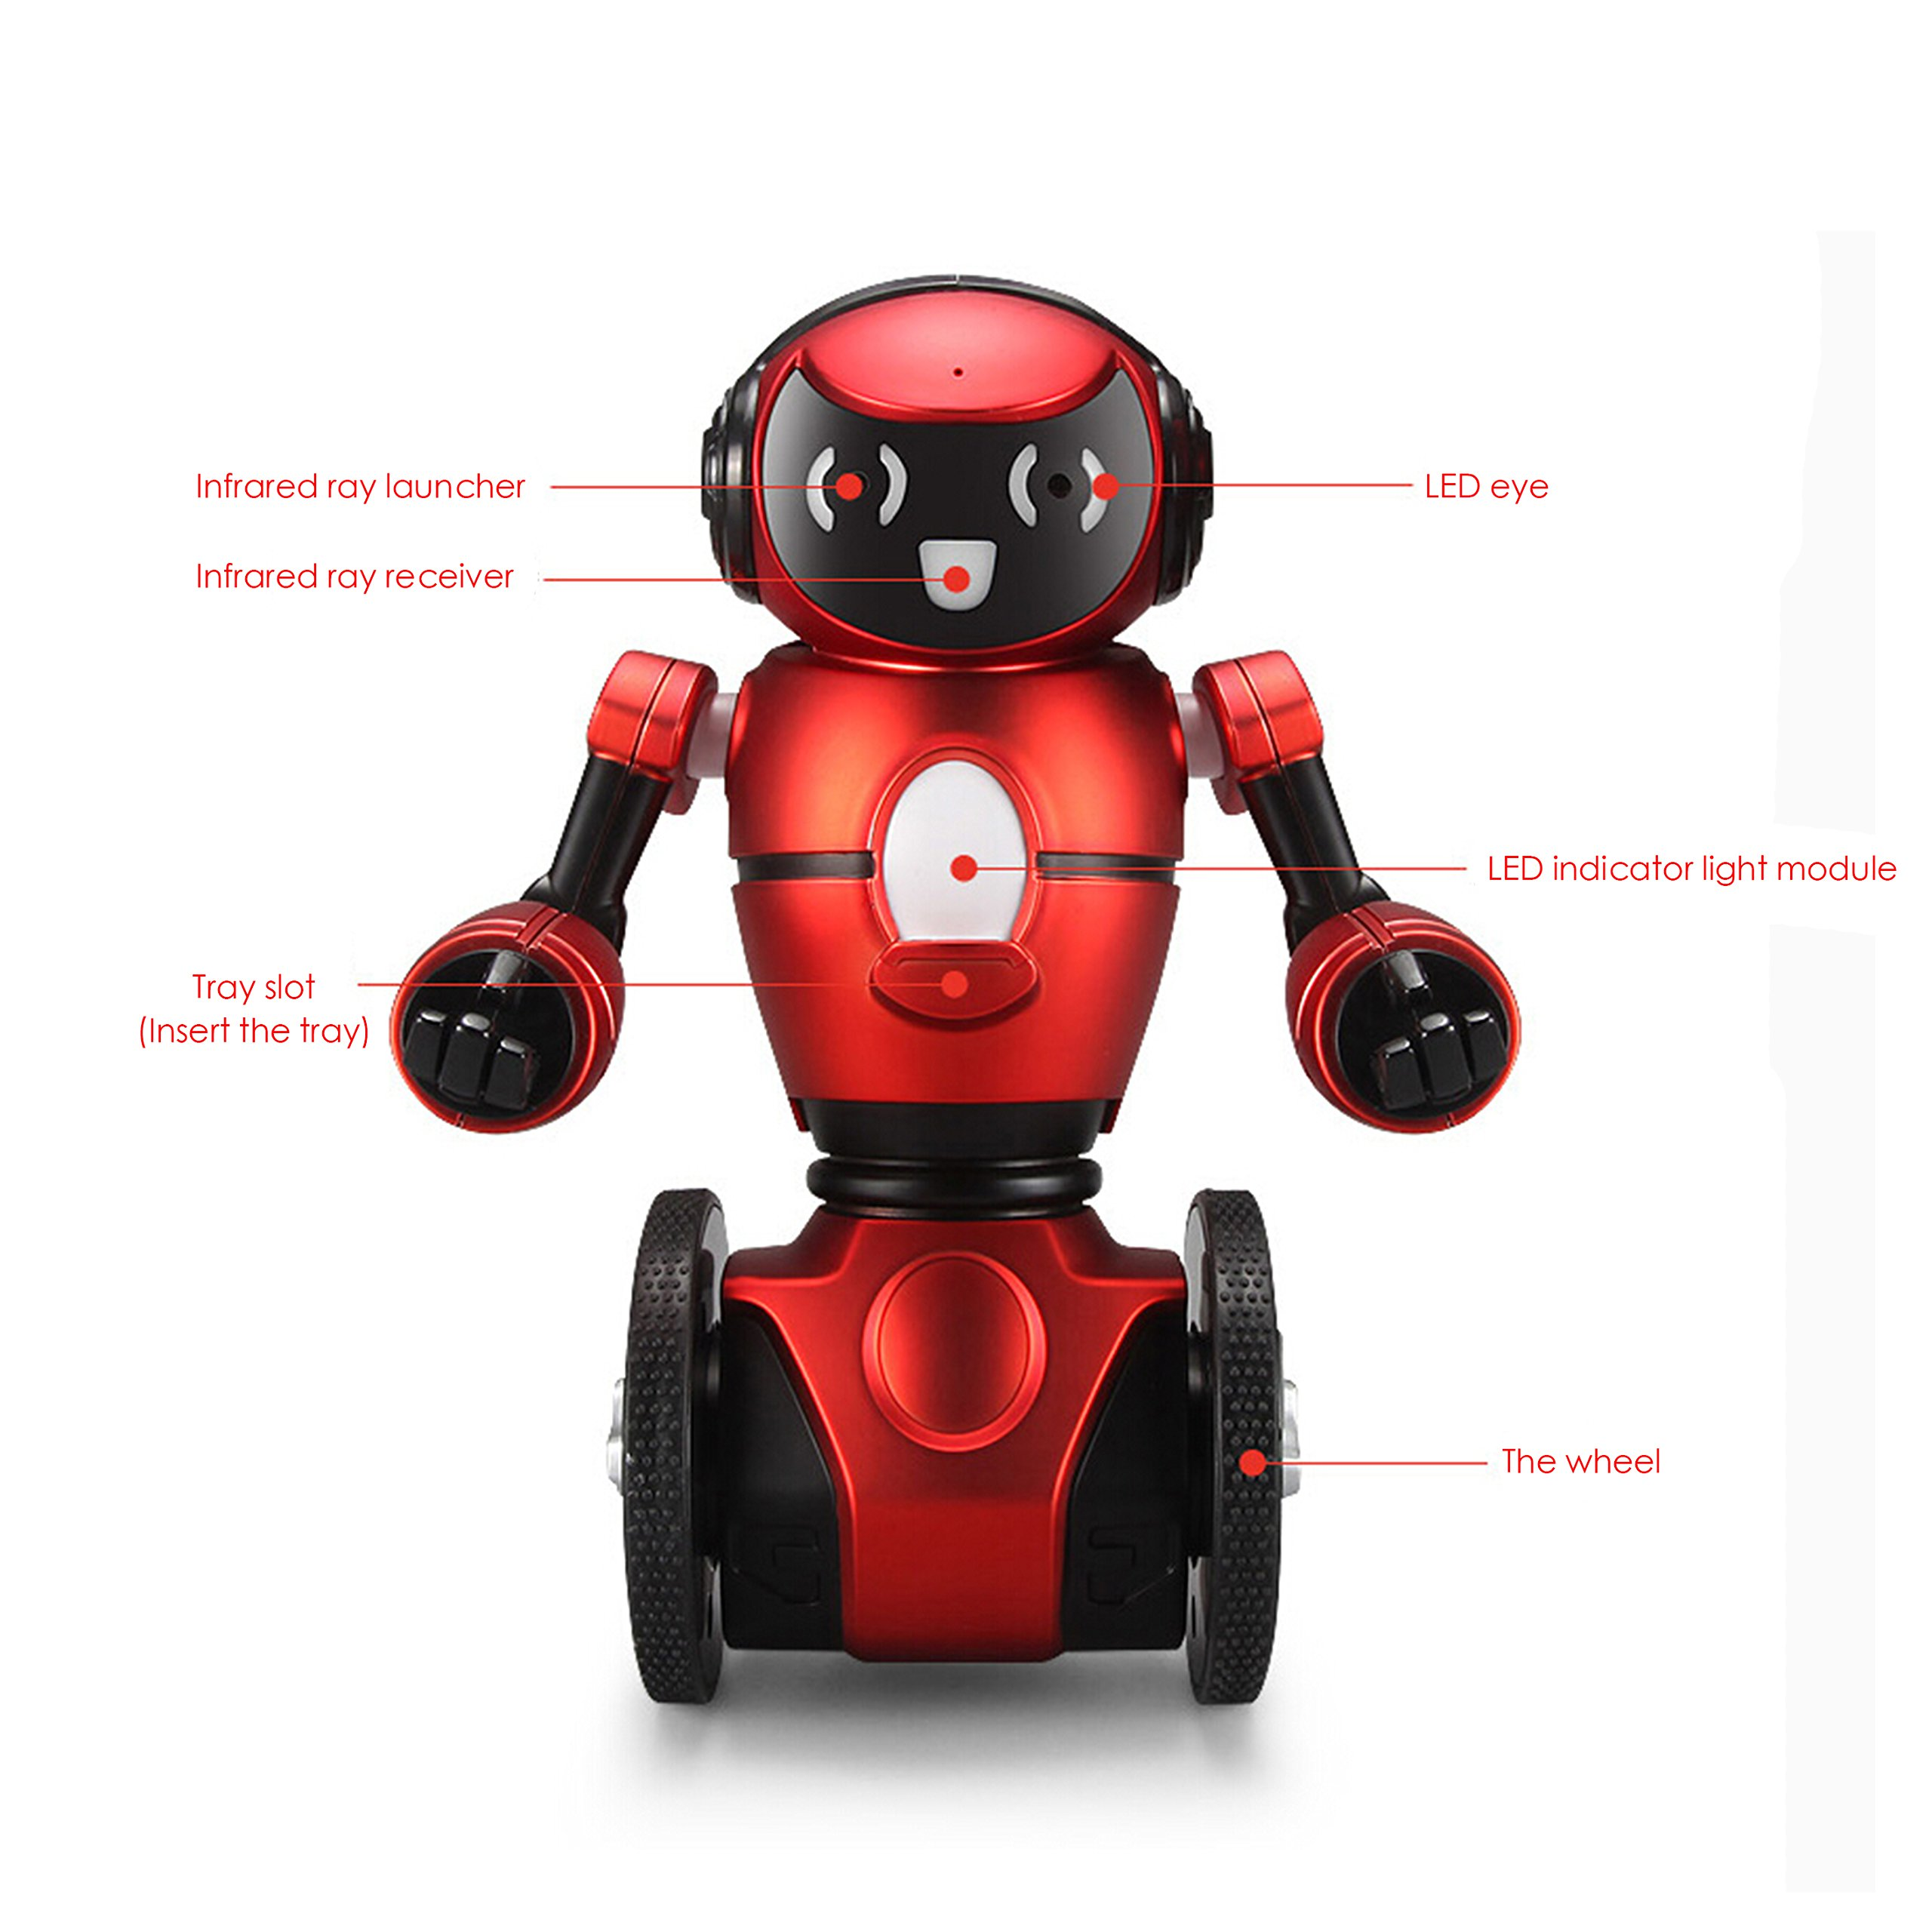 WLToys Intelligent Two Wheels Balance RC Robot Toy with Dance Music Avoidance Human-computer Interaction Mode for Children Kids as a Gift *Colors May Vary. by WLtoys (Image #5)